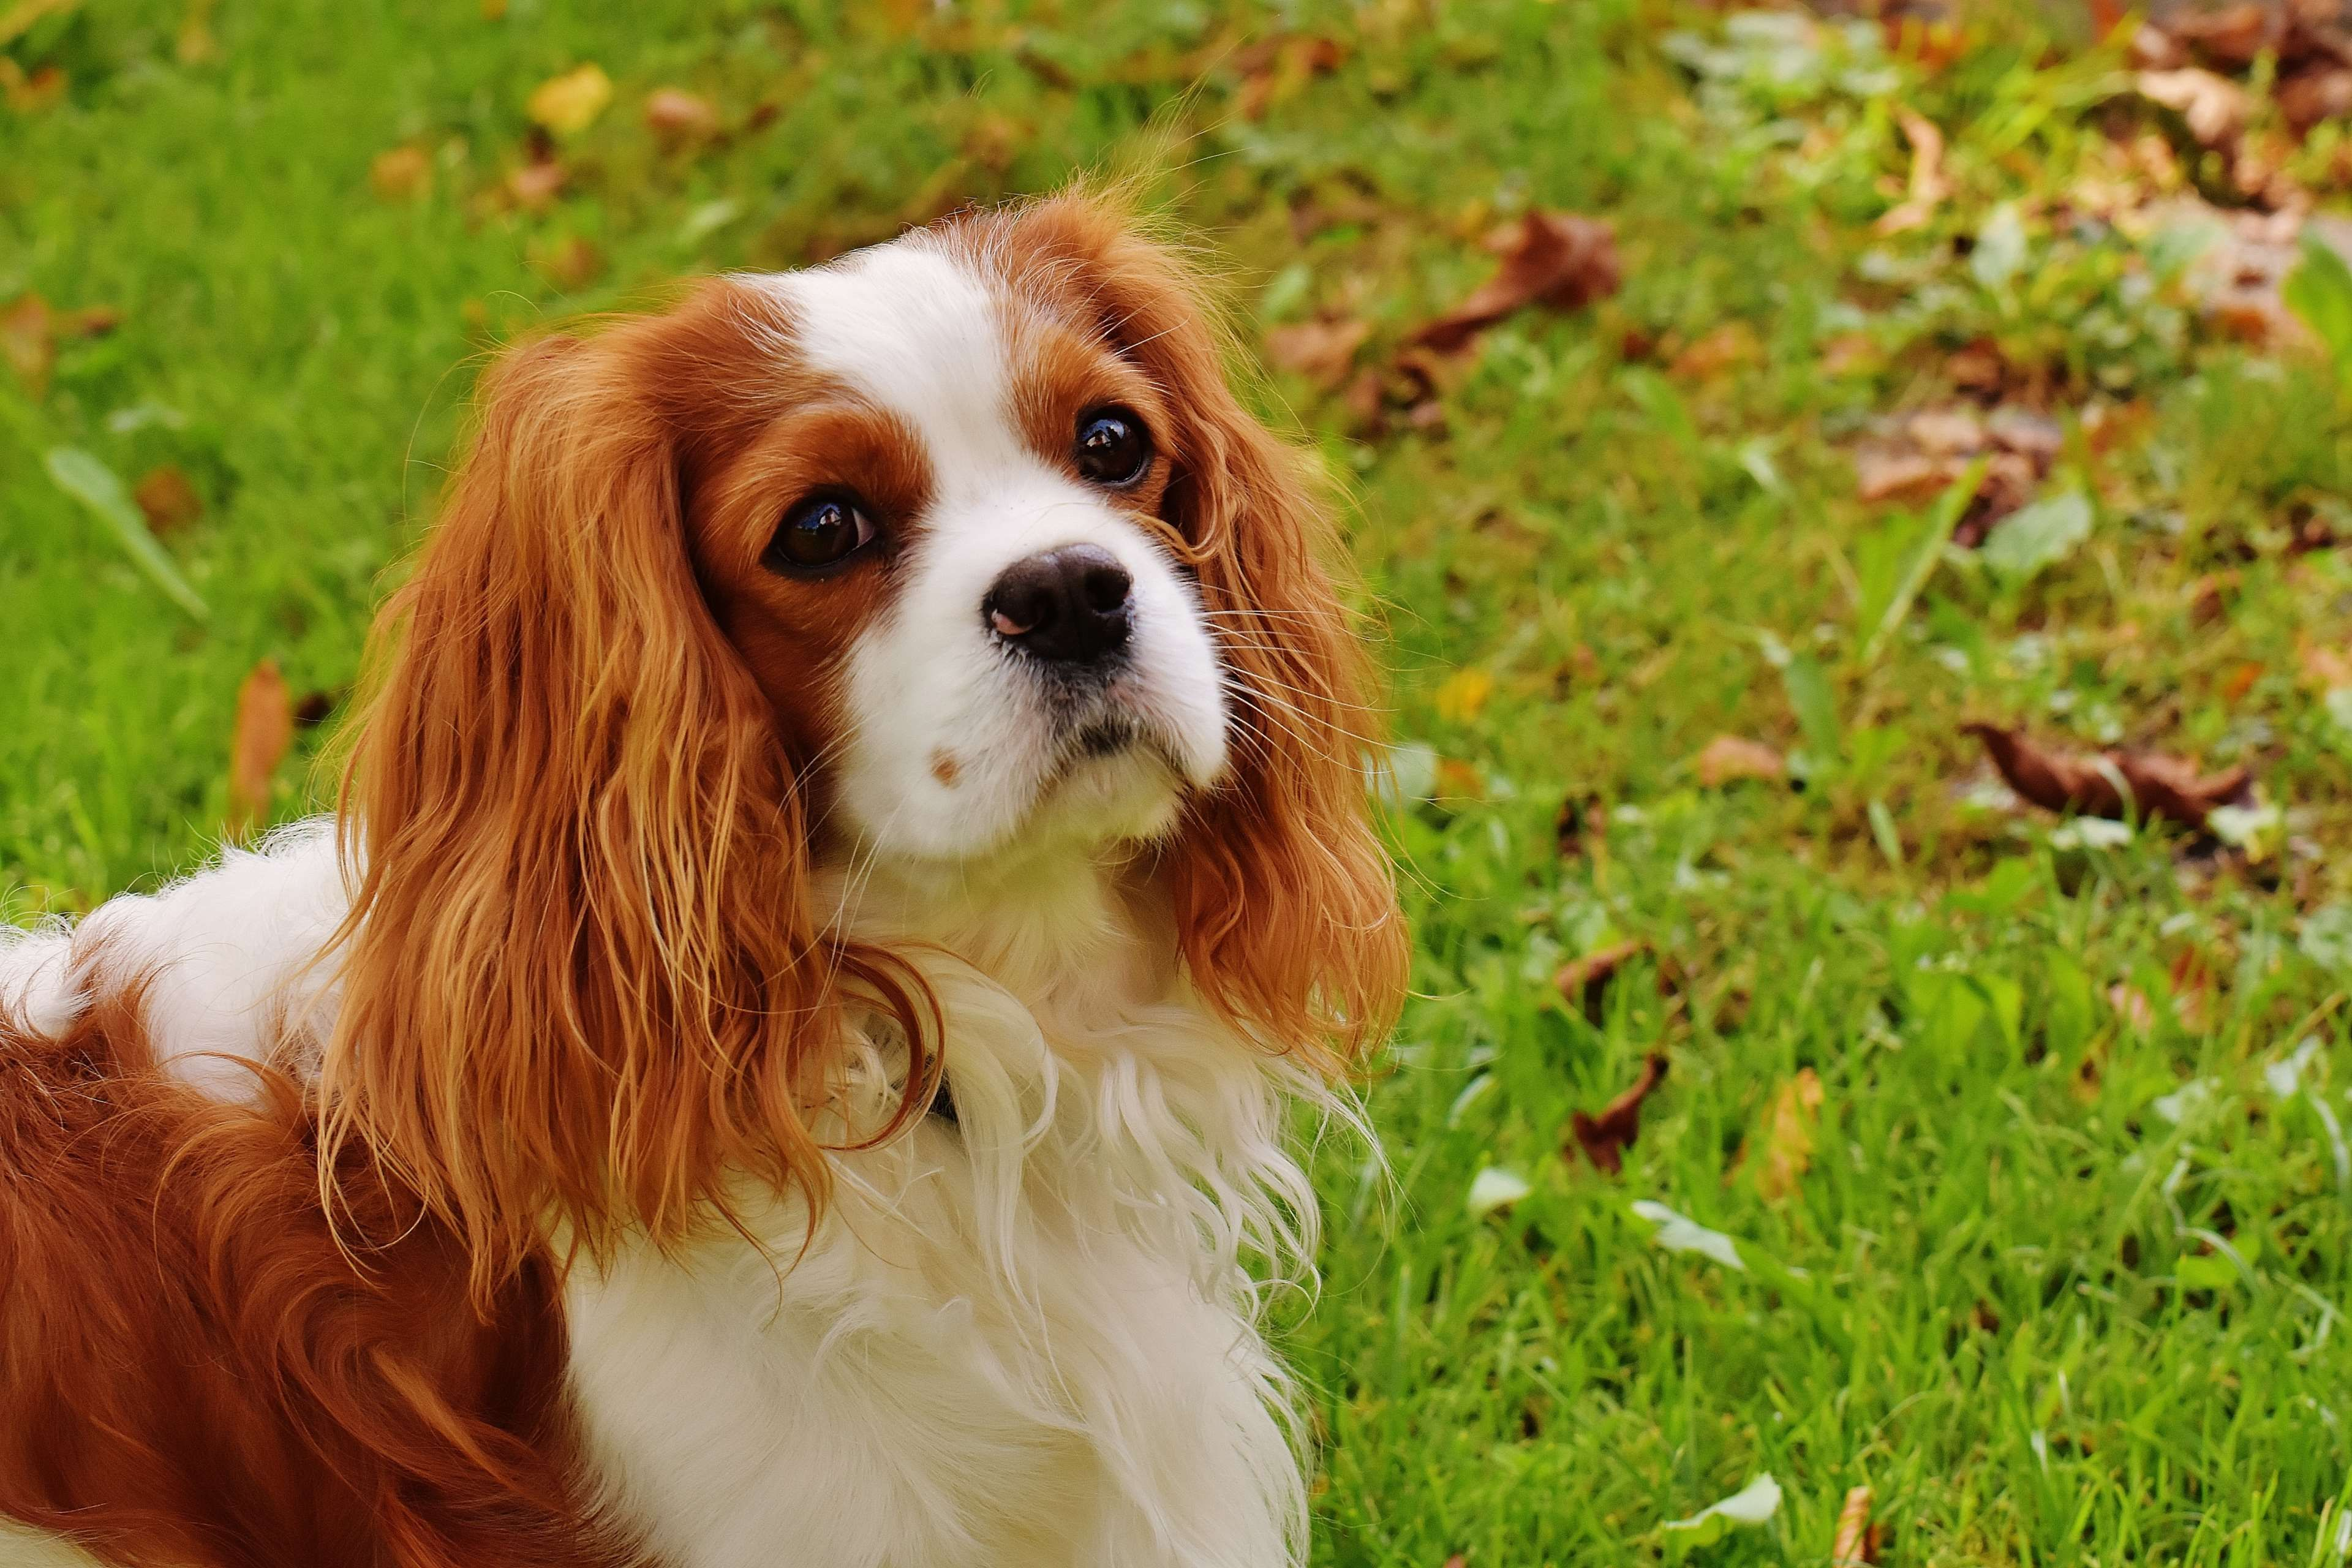 Popular Spaniel Canine Adorable Dog - 7e906a59a7279f83fc57c24ec7ee3346  You Should Have_973559  .jpg